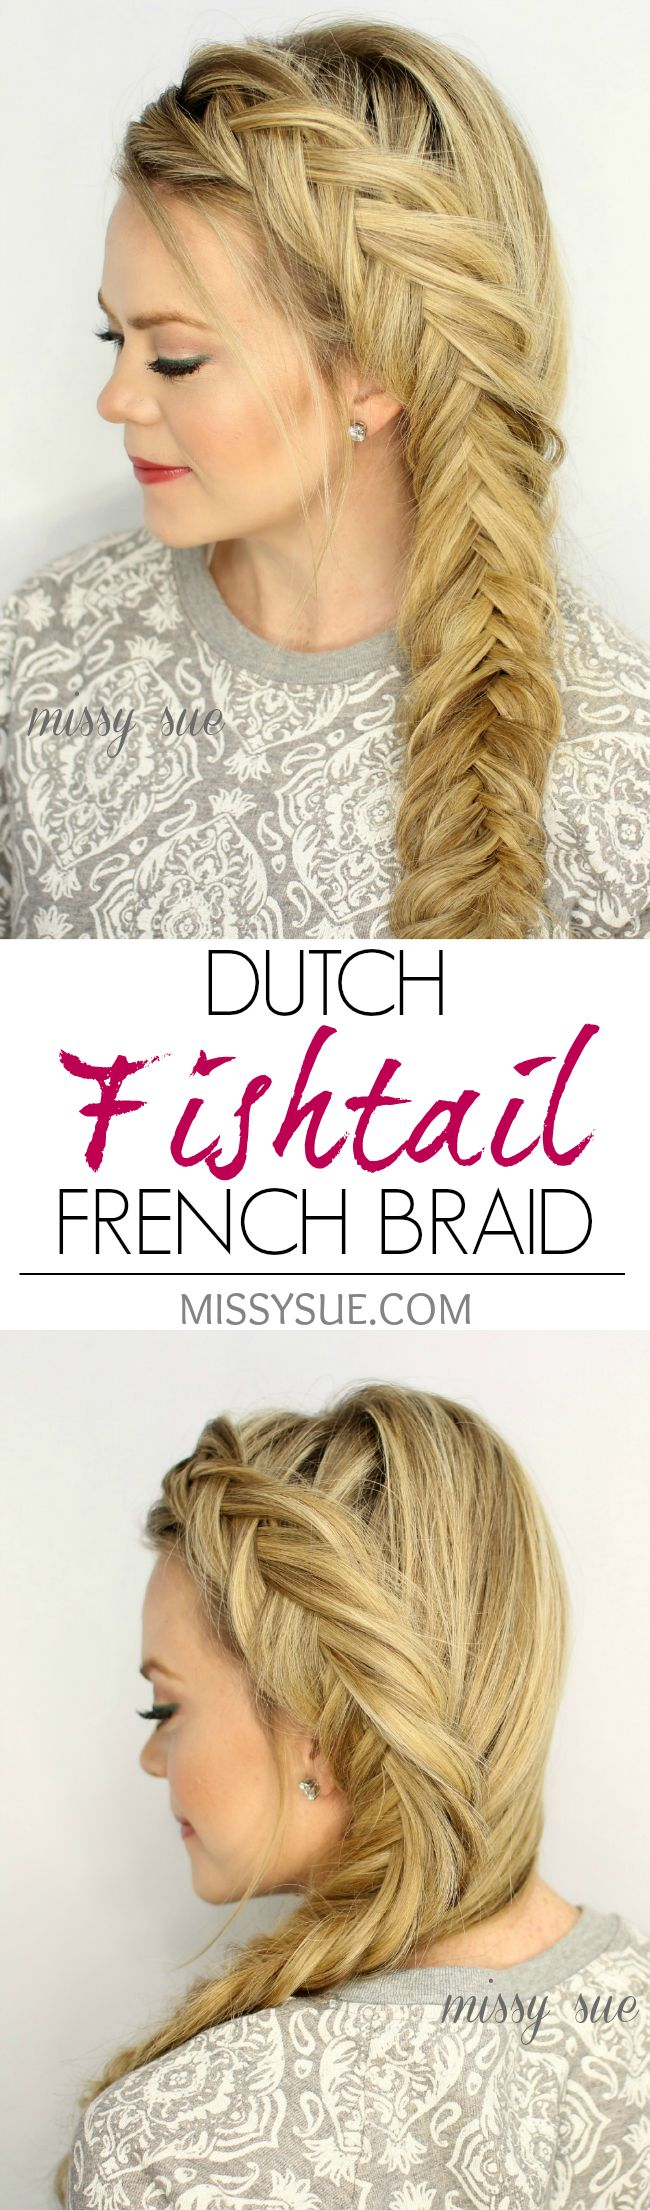 59 best Hair and make-up images on Pinterest | Hairstyles, Hair and ...